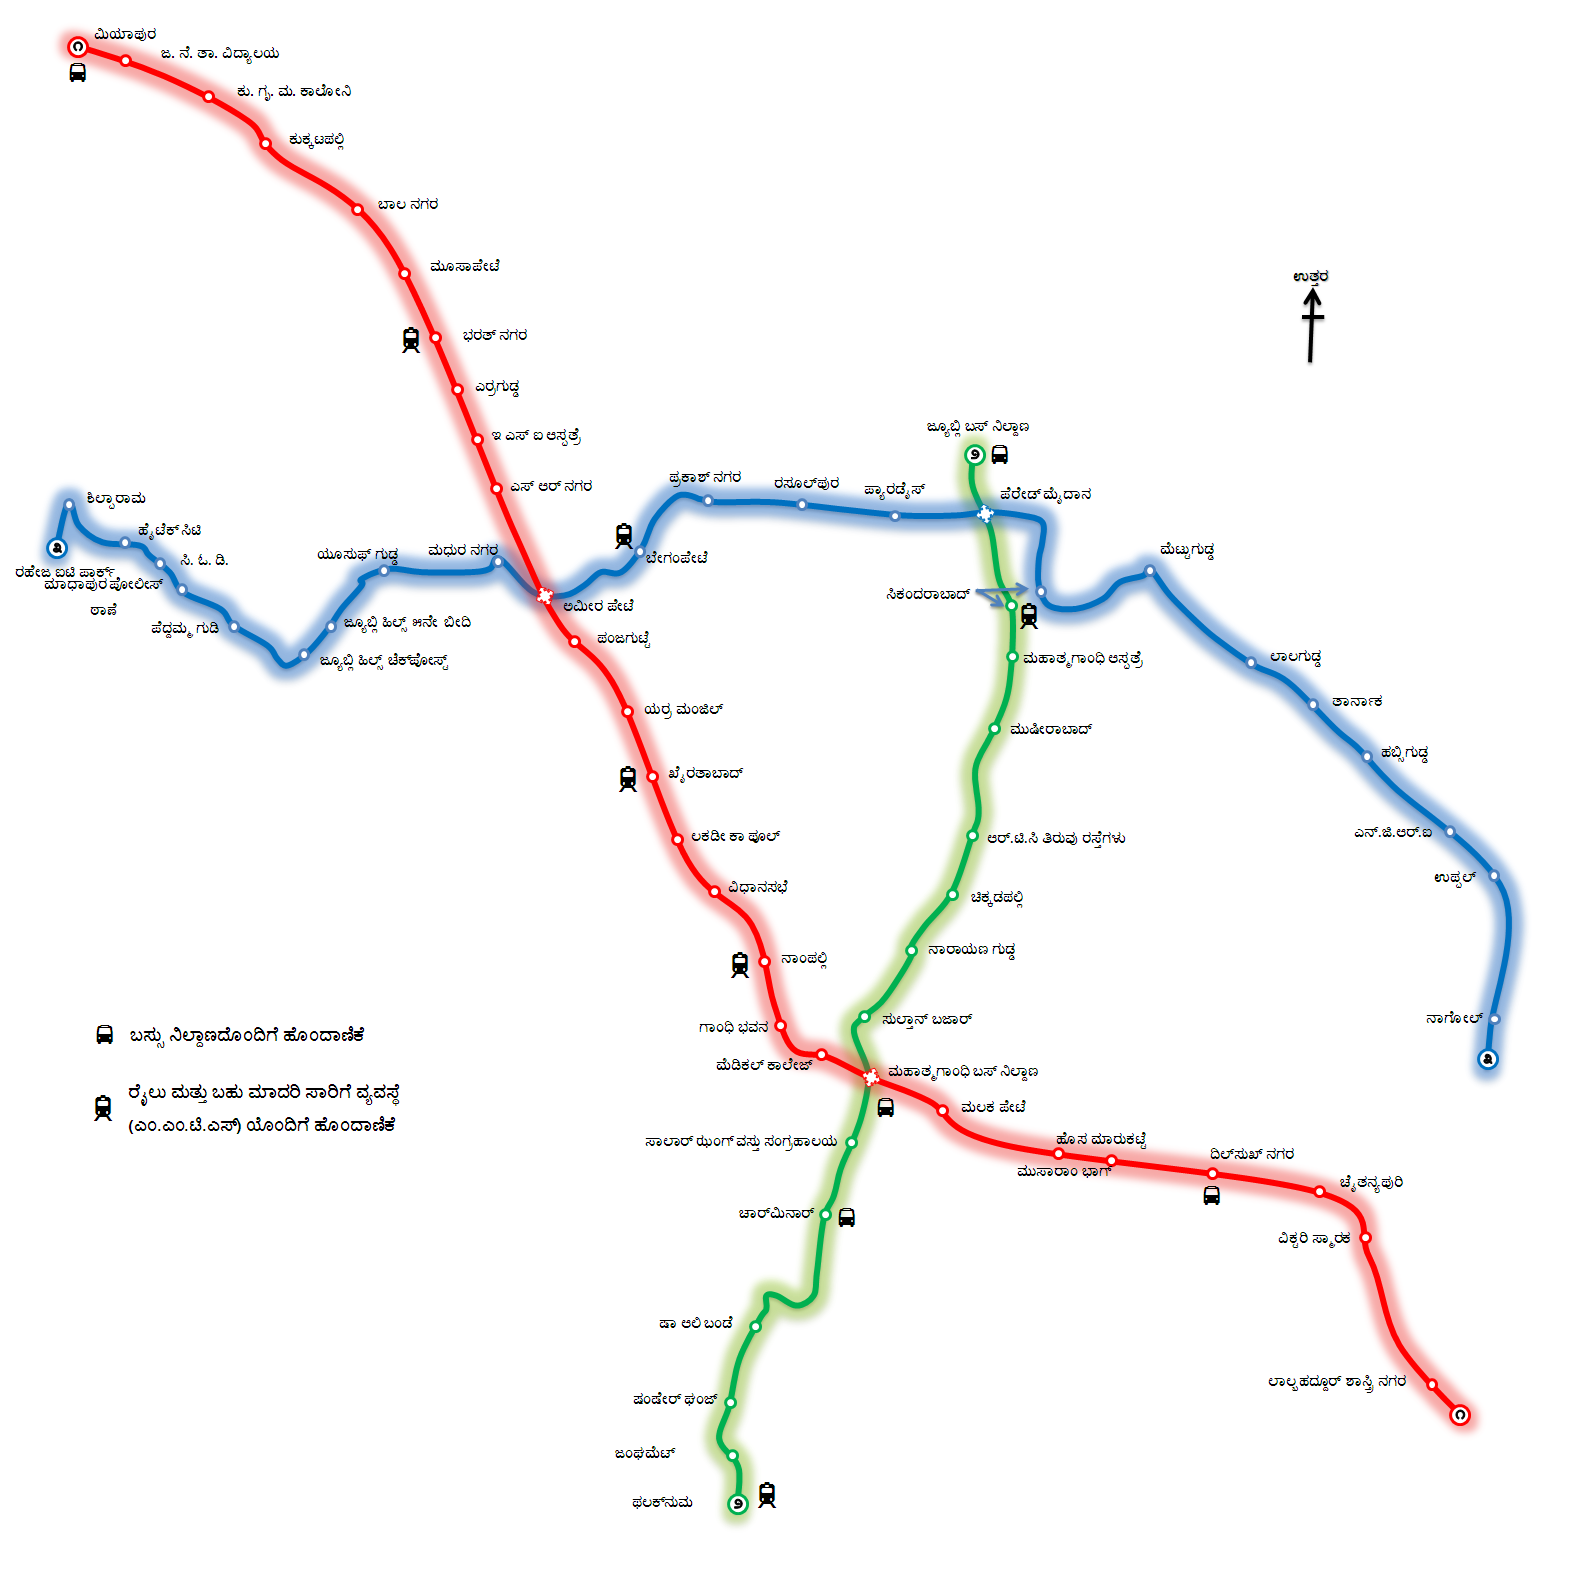 metrorail map with File Hyderabad Metro Rail on 22562 likewise Rtsp moreover 429559225 together with Customer Service Matters in addition File Washington DC metro map.